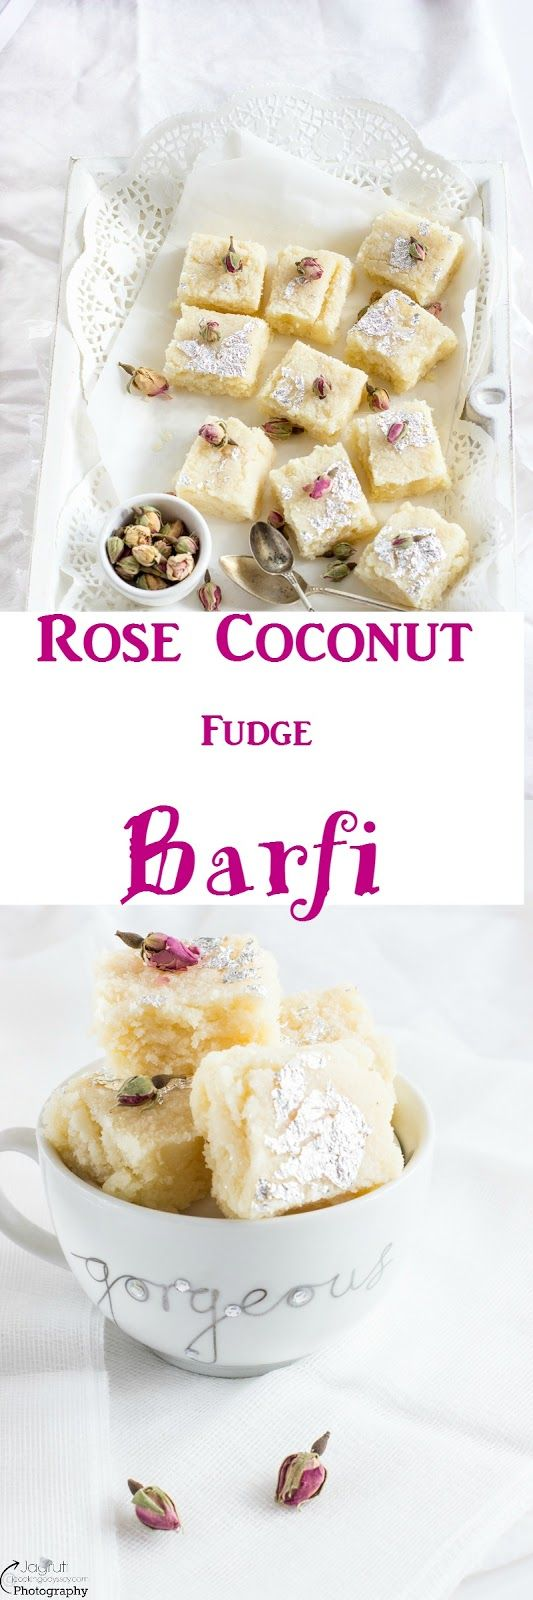 Jagruti's Cooking Odyssey: Rose Coconut Barfi - Fudge - #Navratrispecial